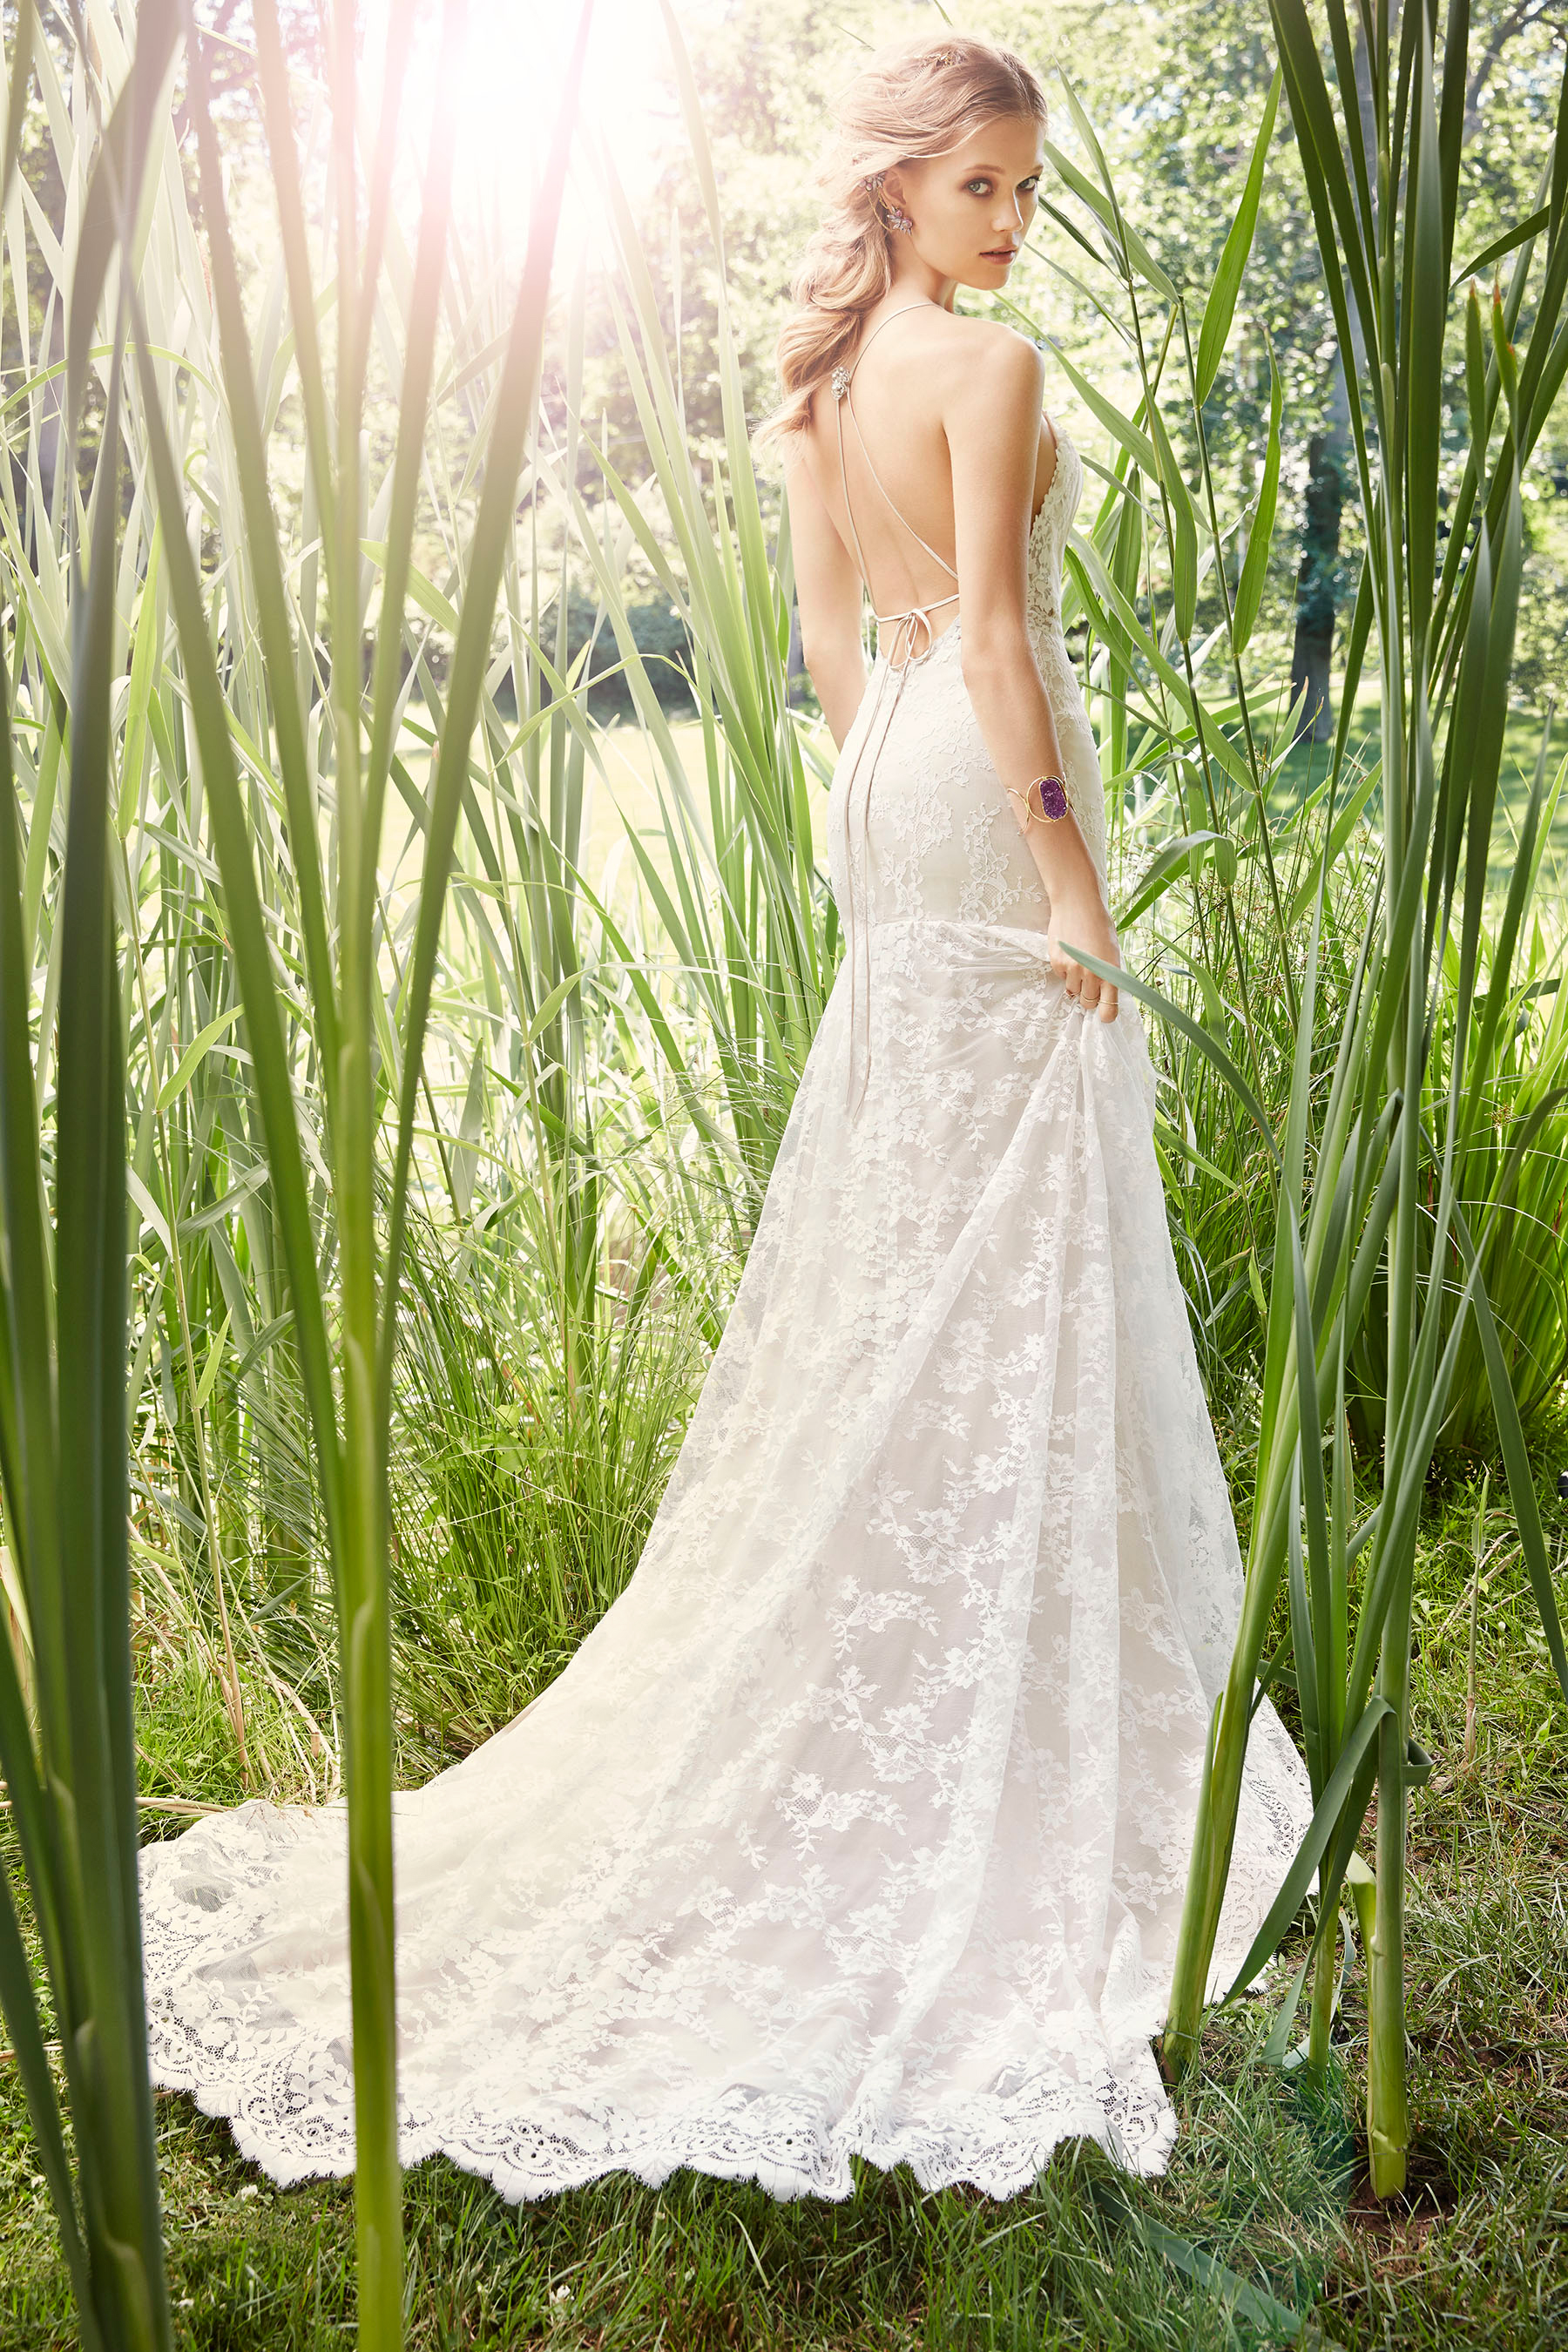 ti-adora-bridal-lace-fit-n-flare-sweetheart-neckline-jeweled-strappy-low-open-back-7550_x5.jpg